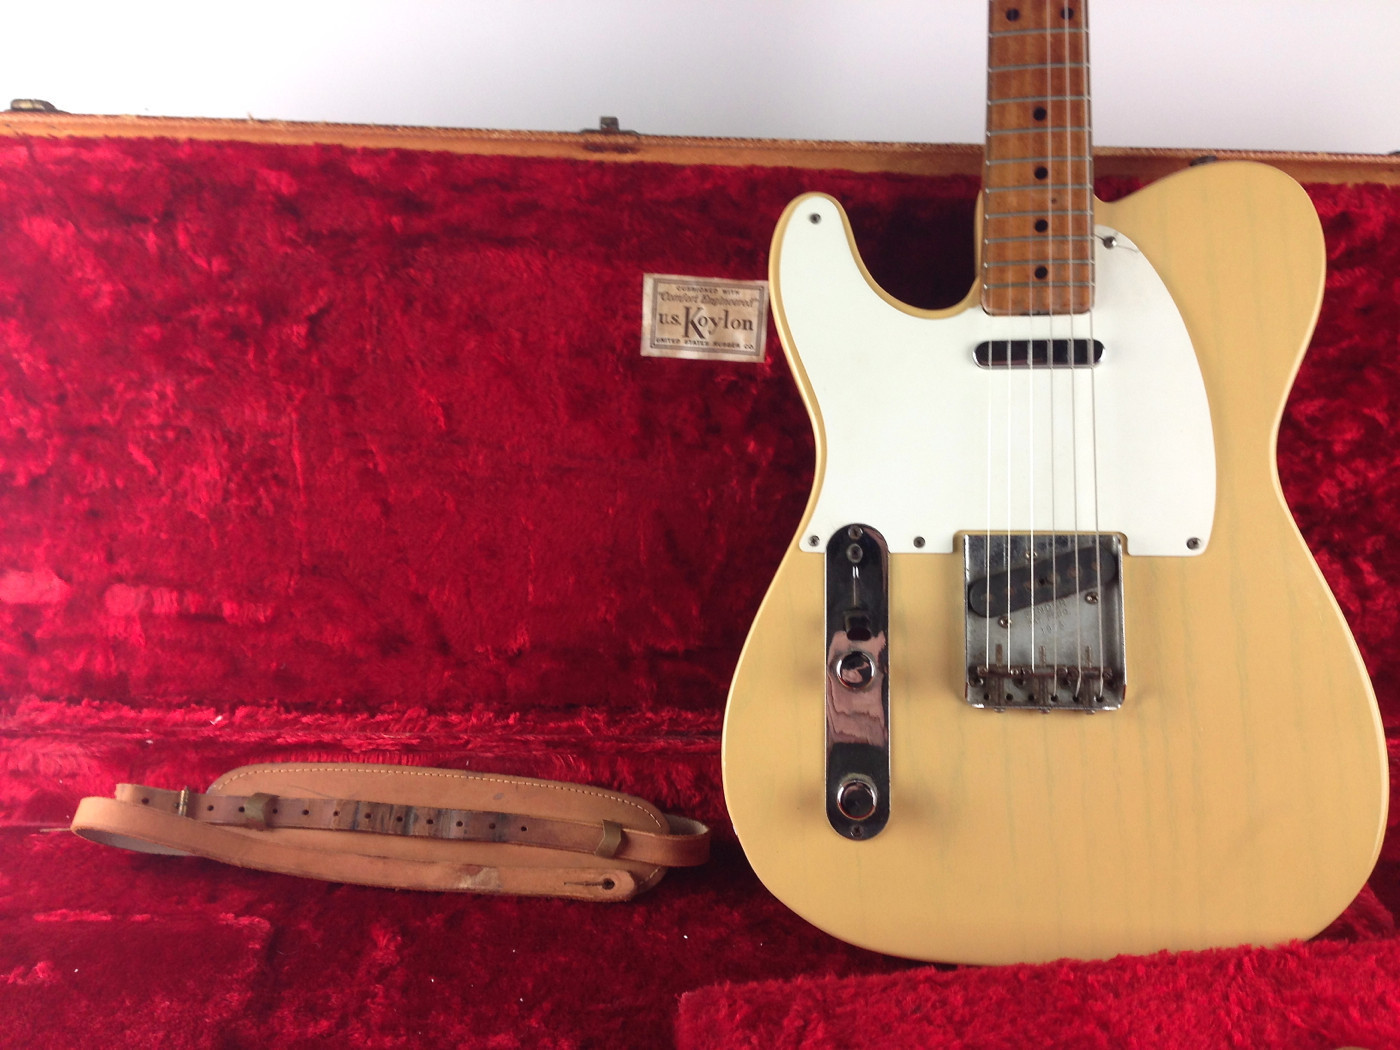 Vintage Guitarz May 2013 1965 Gibson Es345 Wiring Repair Chicago Fret Works Guitar Comments Rare And Cool Left Handed Mid 50s Fender Telecaster